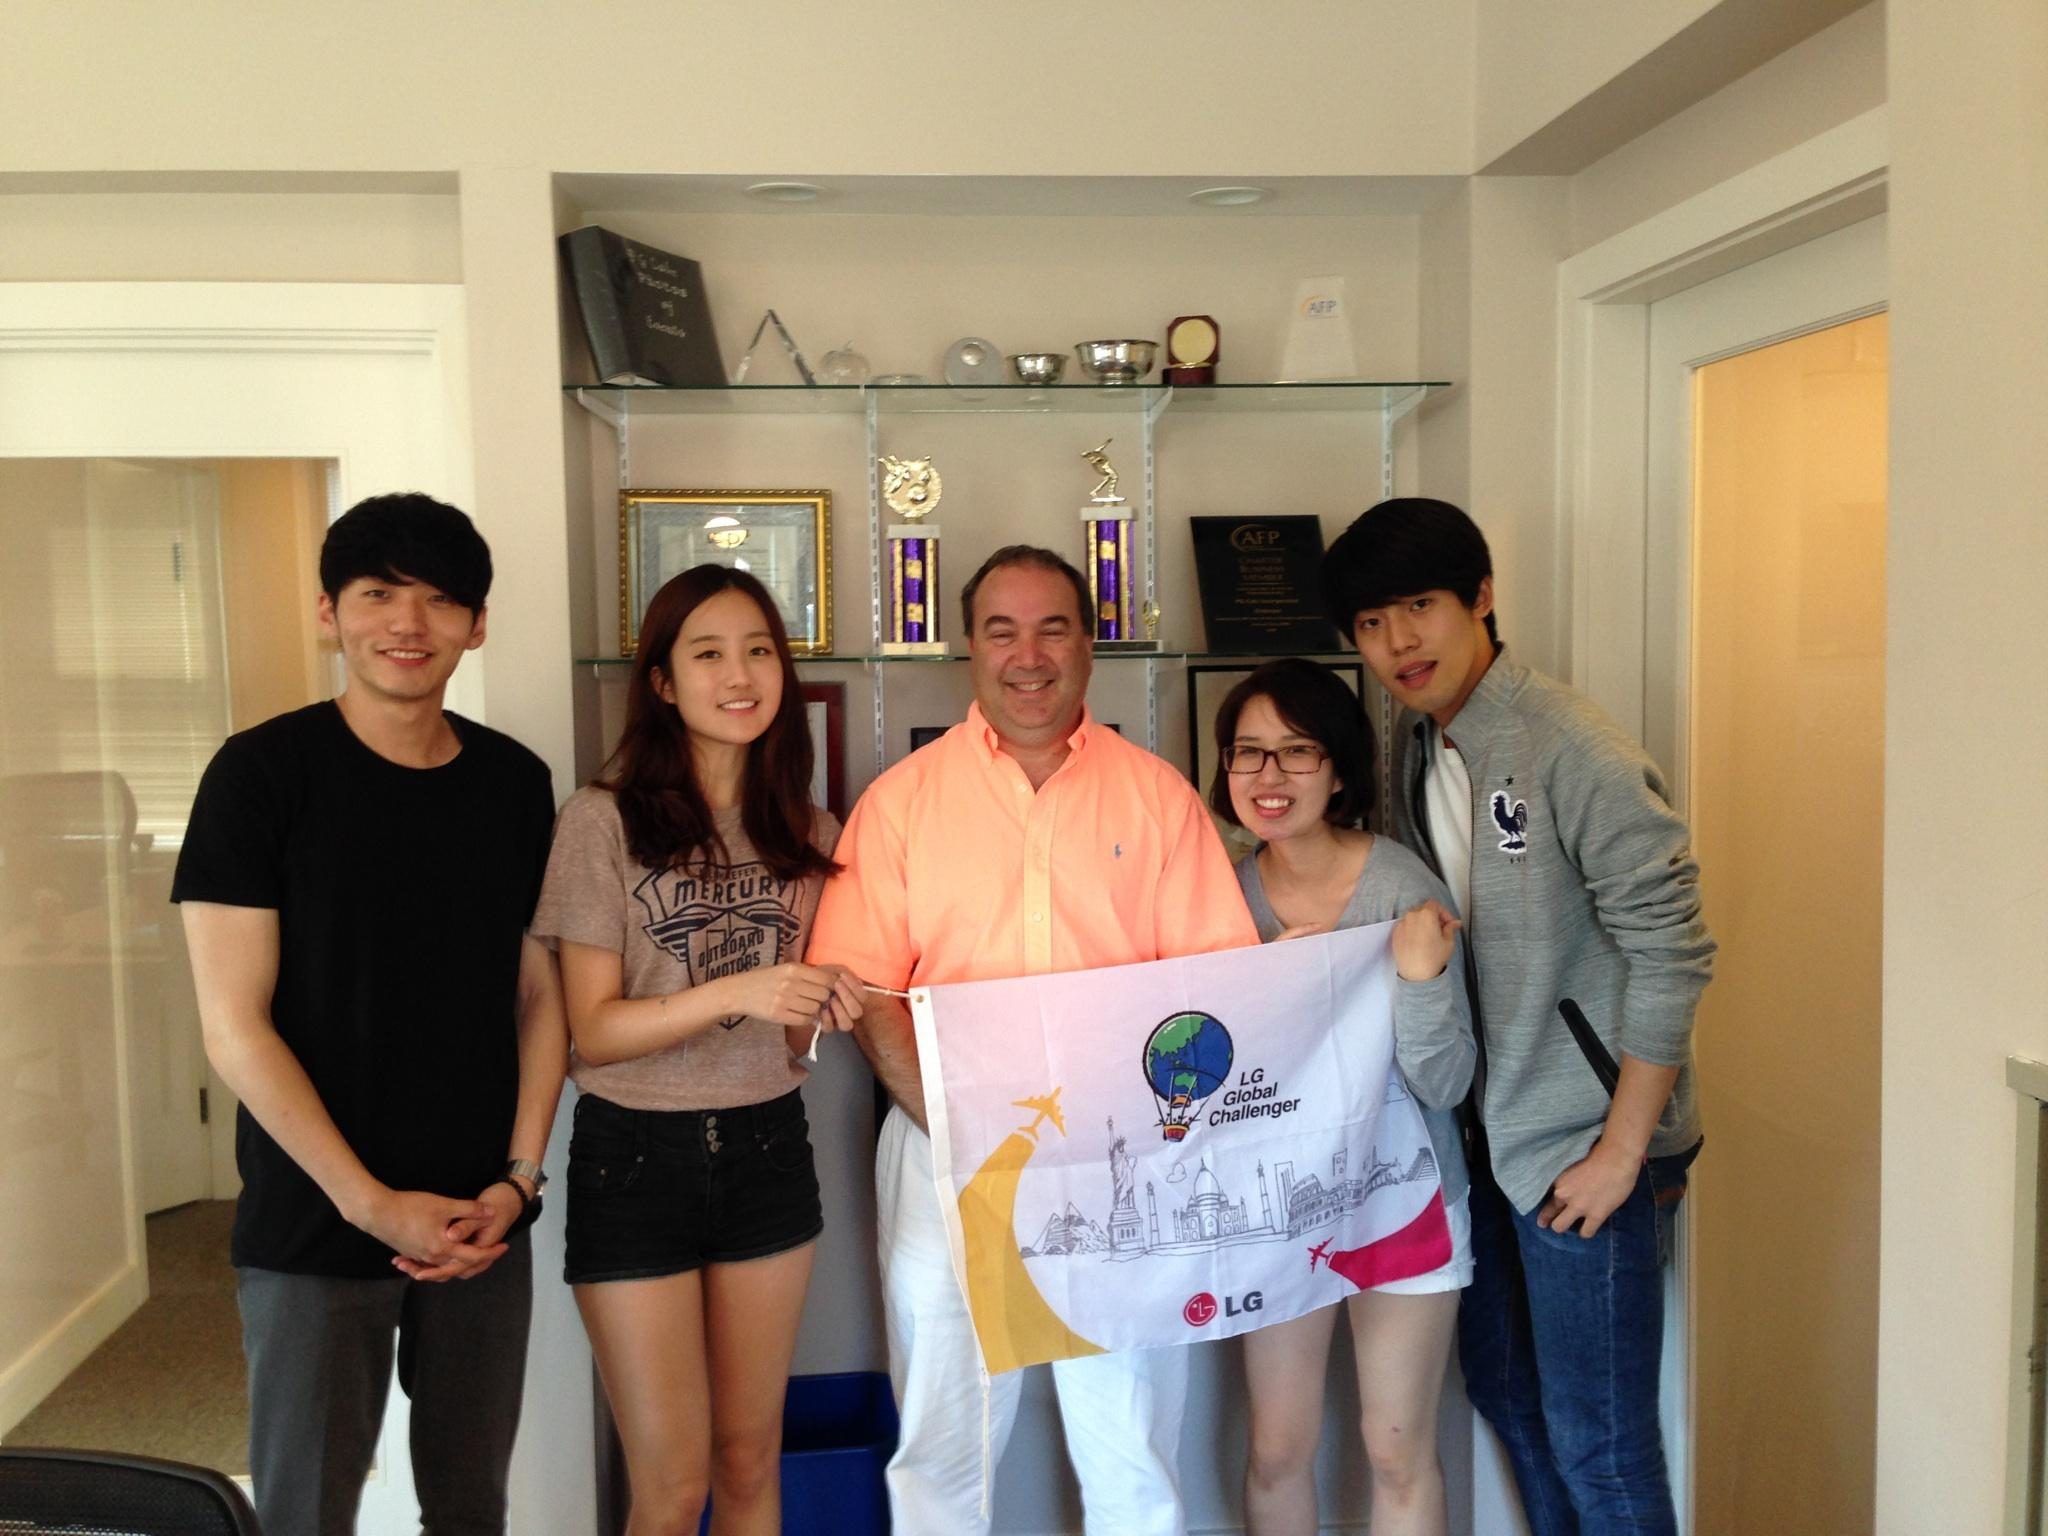 PG Calc Hosts Delegation From South Korea to Discuss Planned Giving